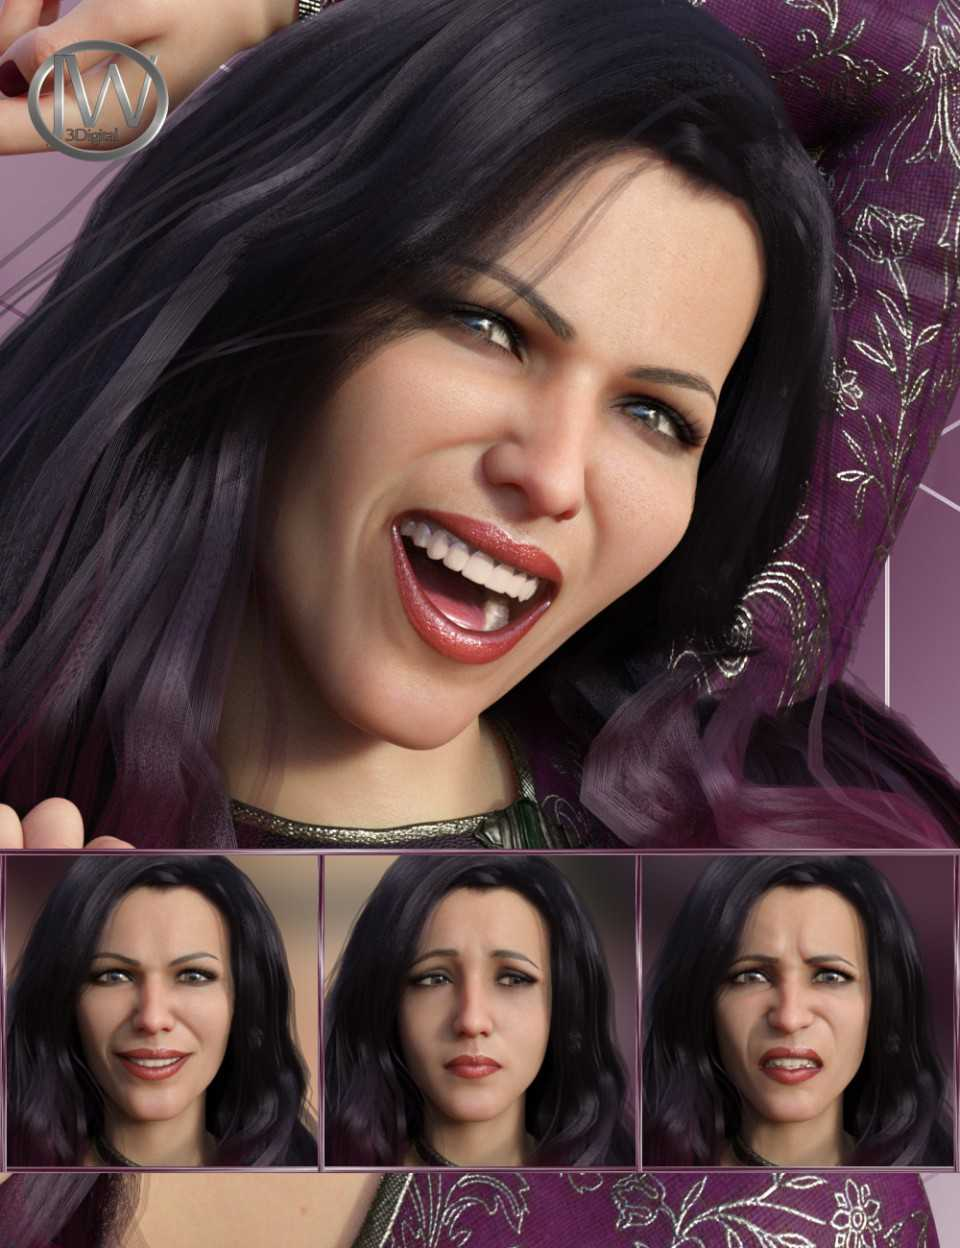 Feelings – Expressions for Genesis 8 Female and Bridget 8